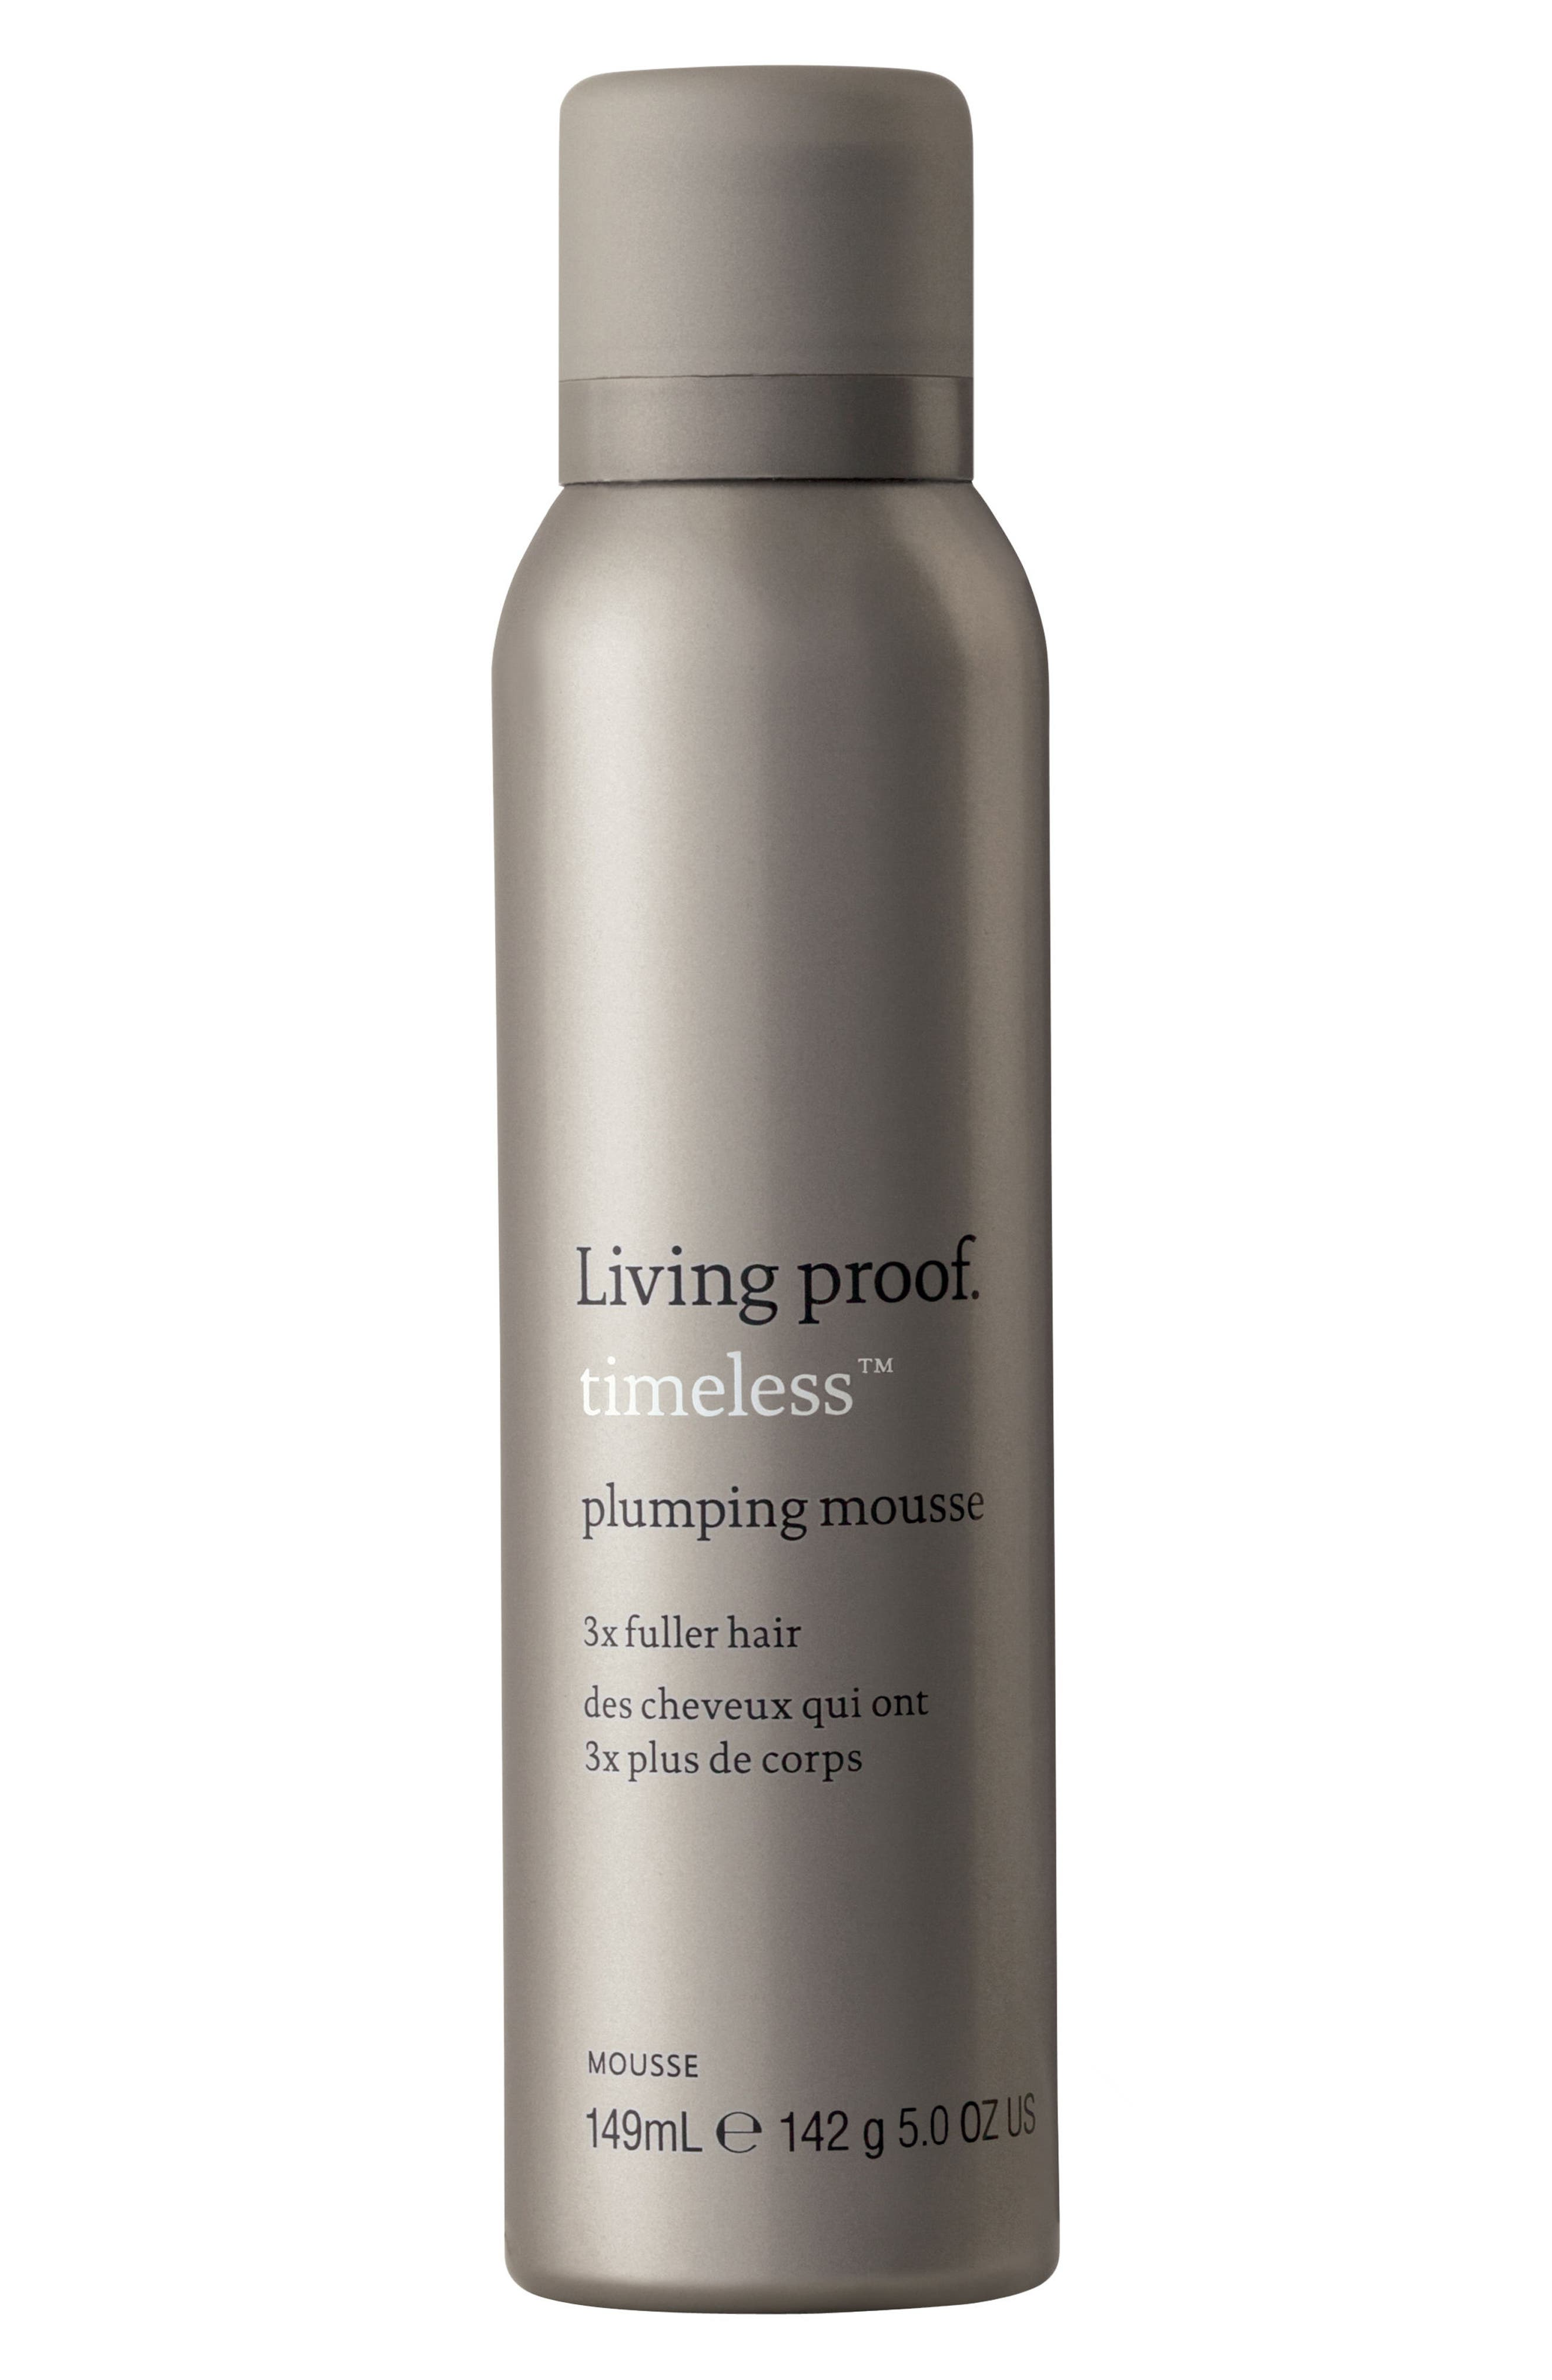 Timeless Plumping Mousse,                             Main thumbnail 1, color,                             000